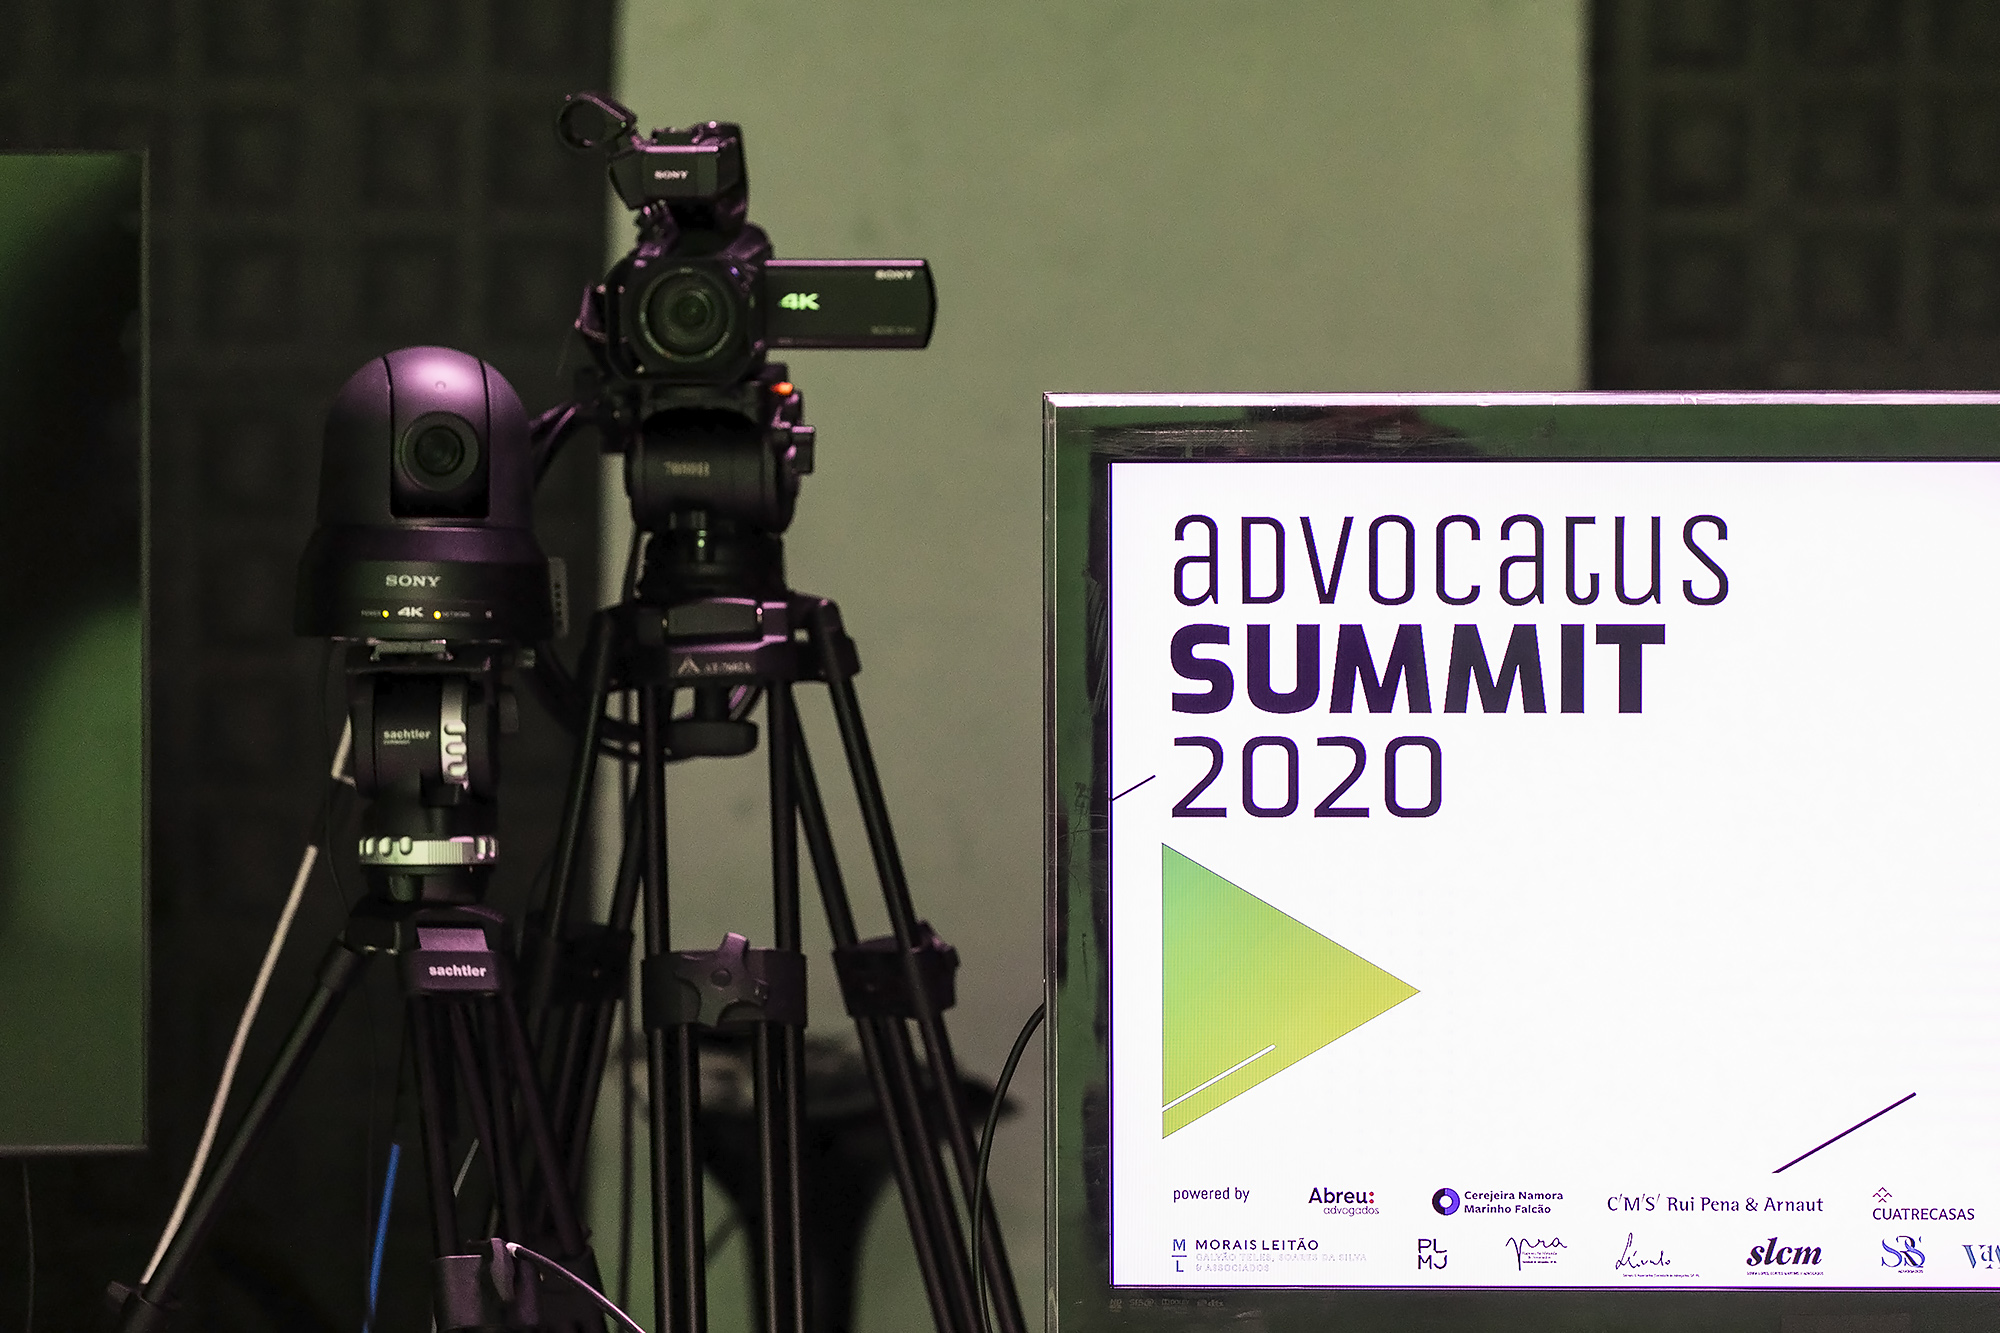 Advocatus Summit Lisboa 2020 - 10NOV20